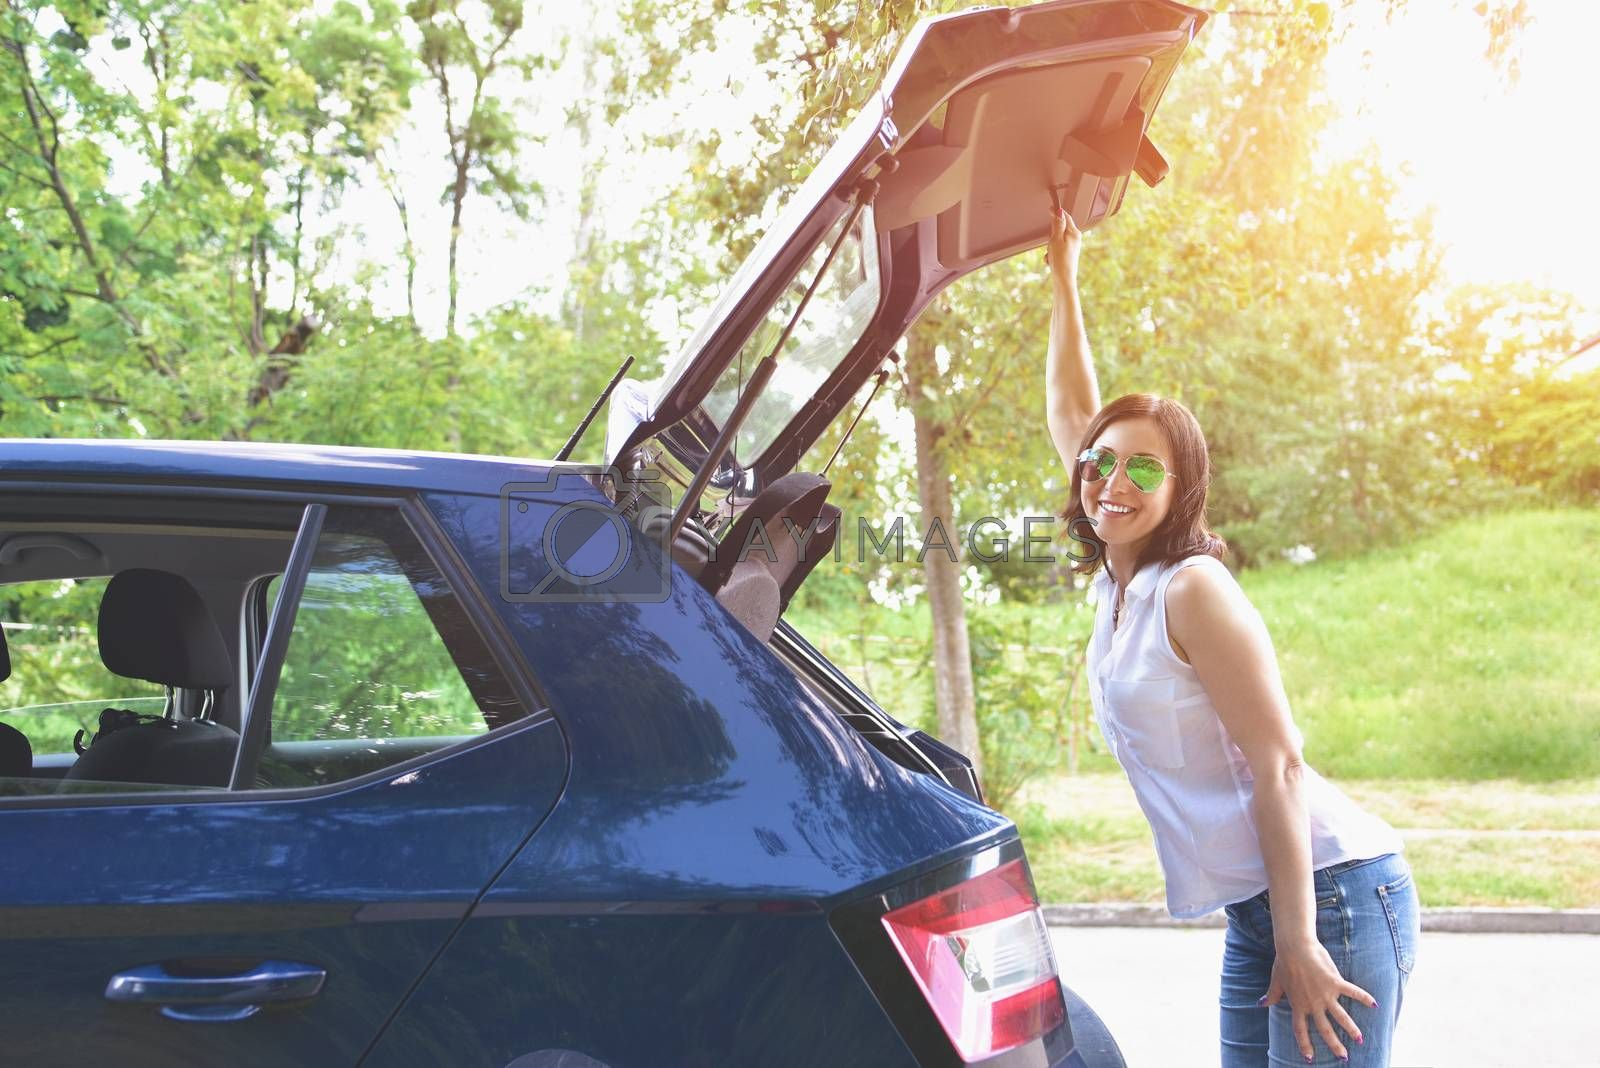 Smiling Caucasian woman in a white blouse and denim shorts putting her stuff bags into the car trunk